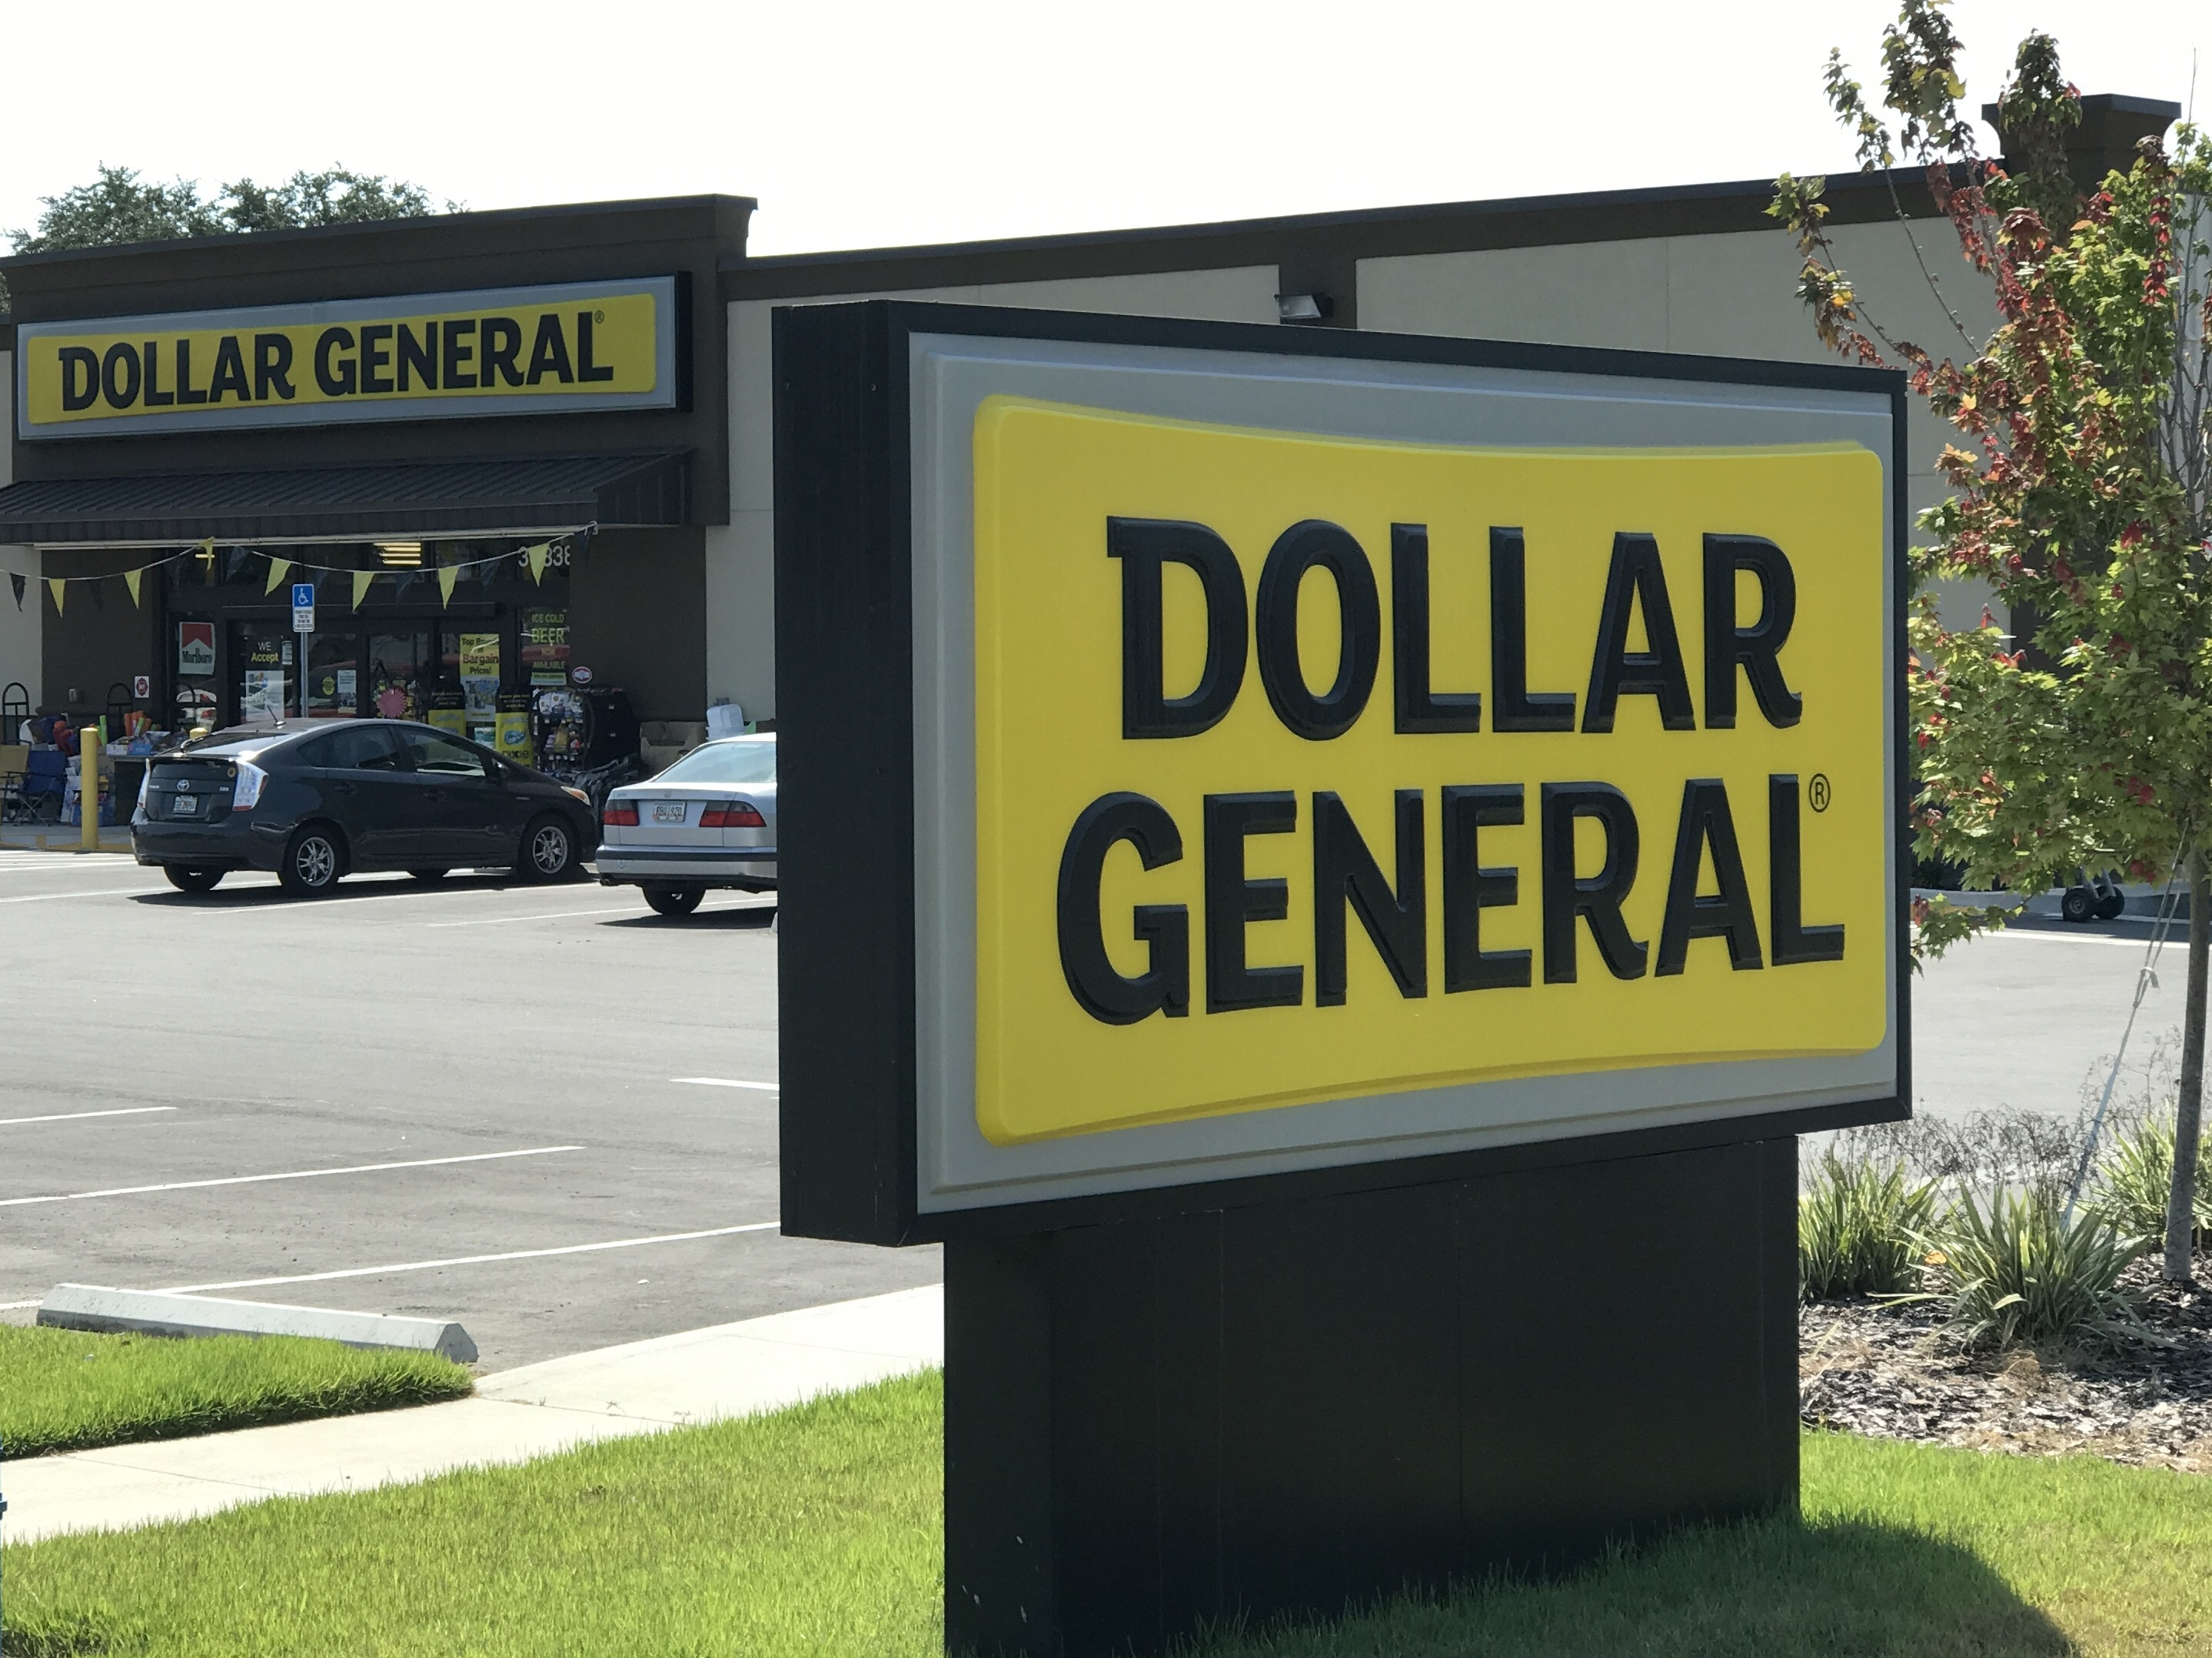 Dollar General Delivers In Q3, Plans 900 New Stores